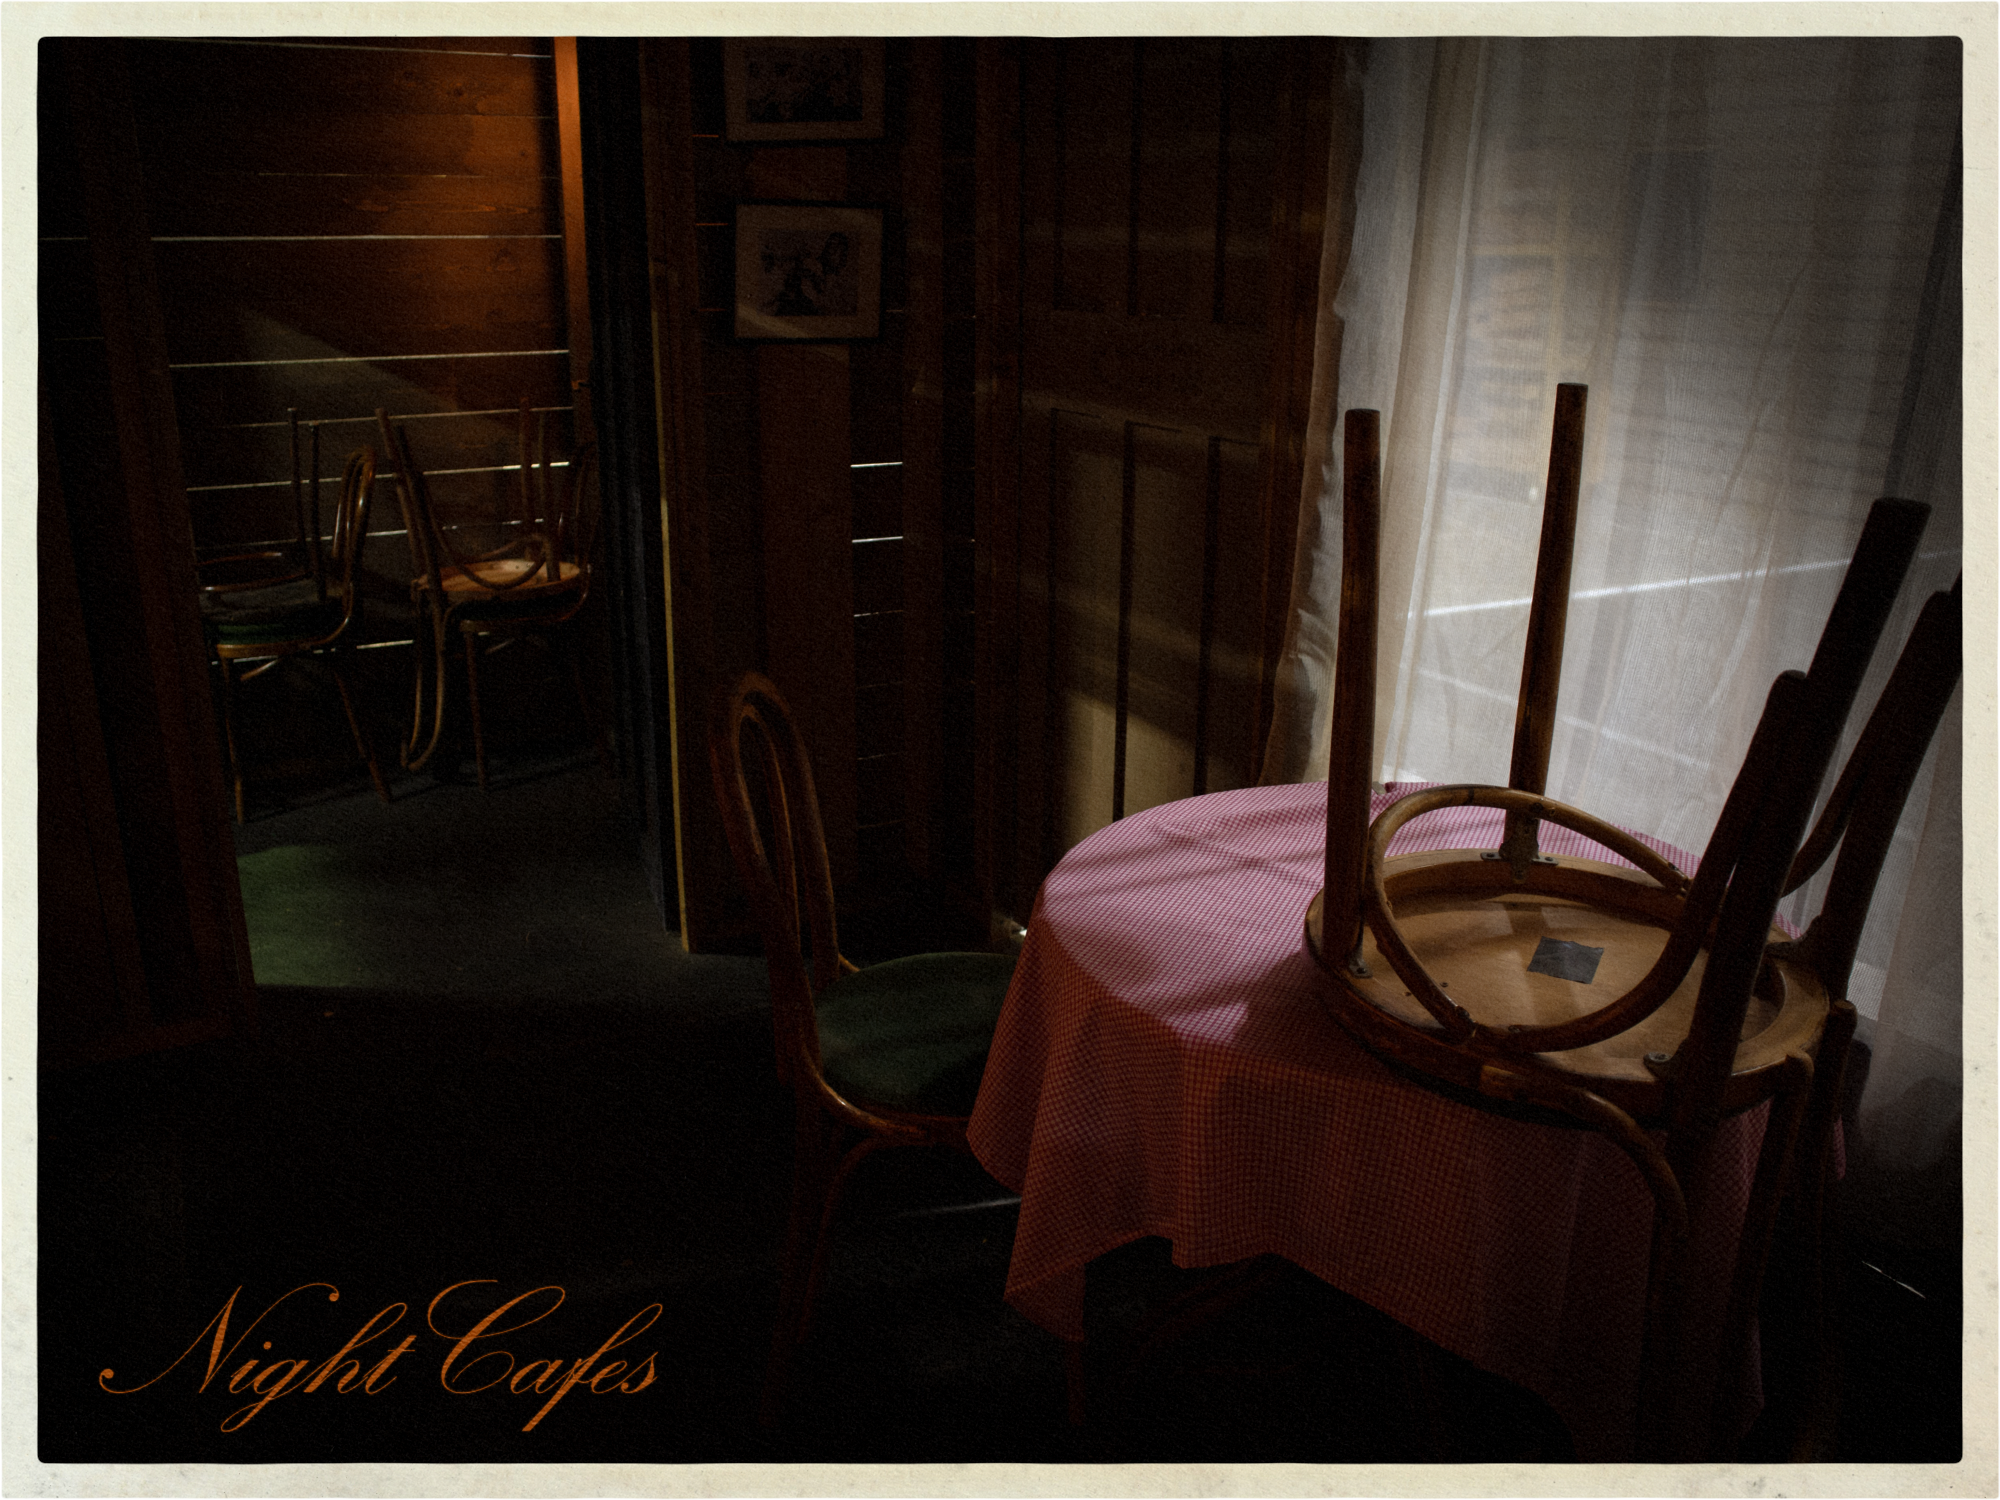 And night cafes…